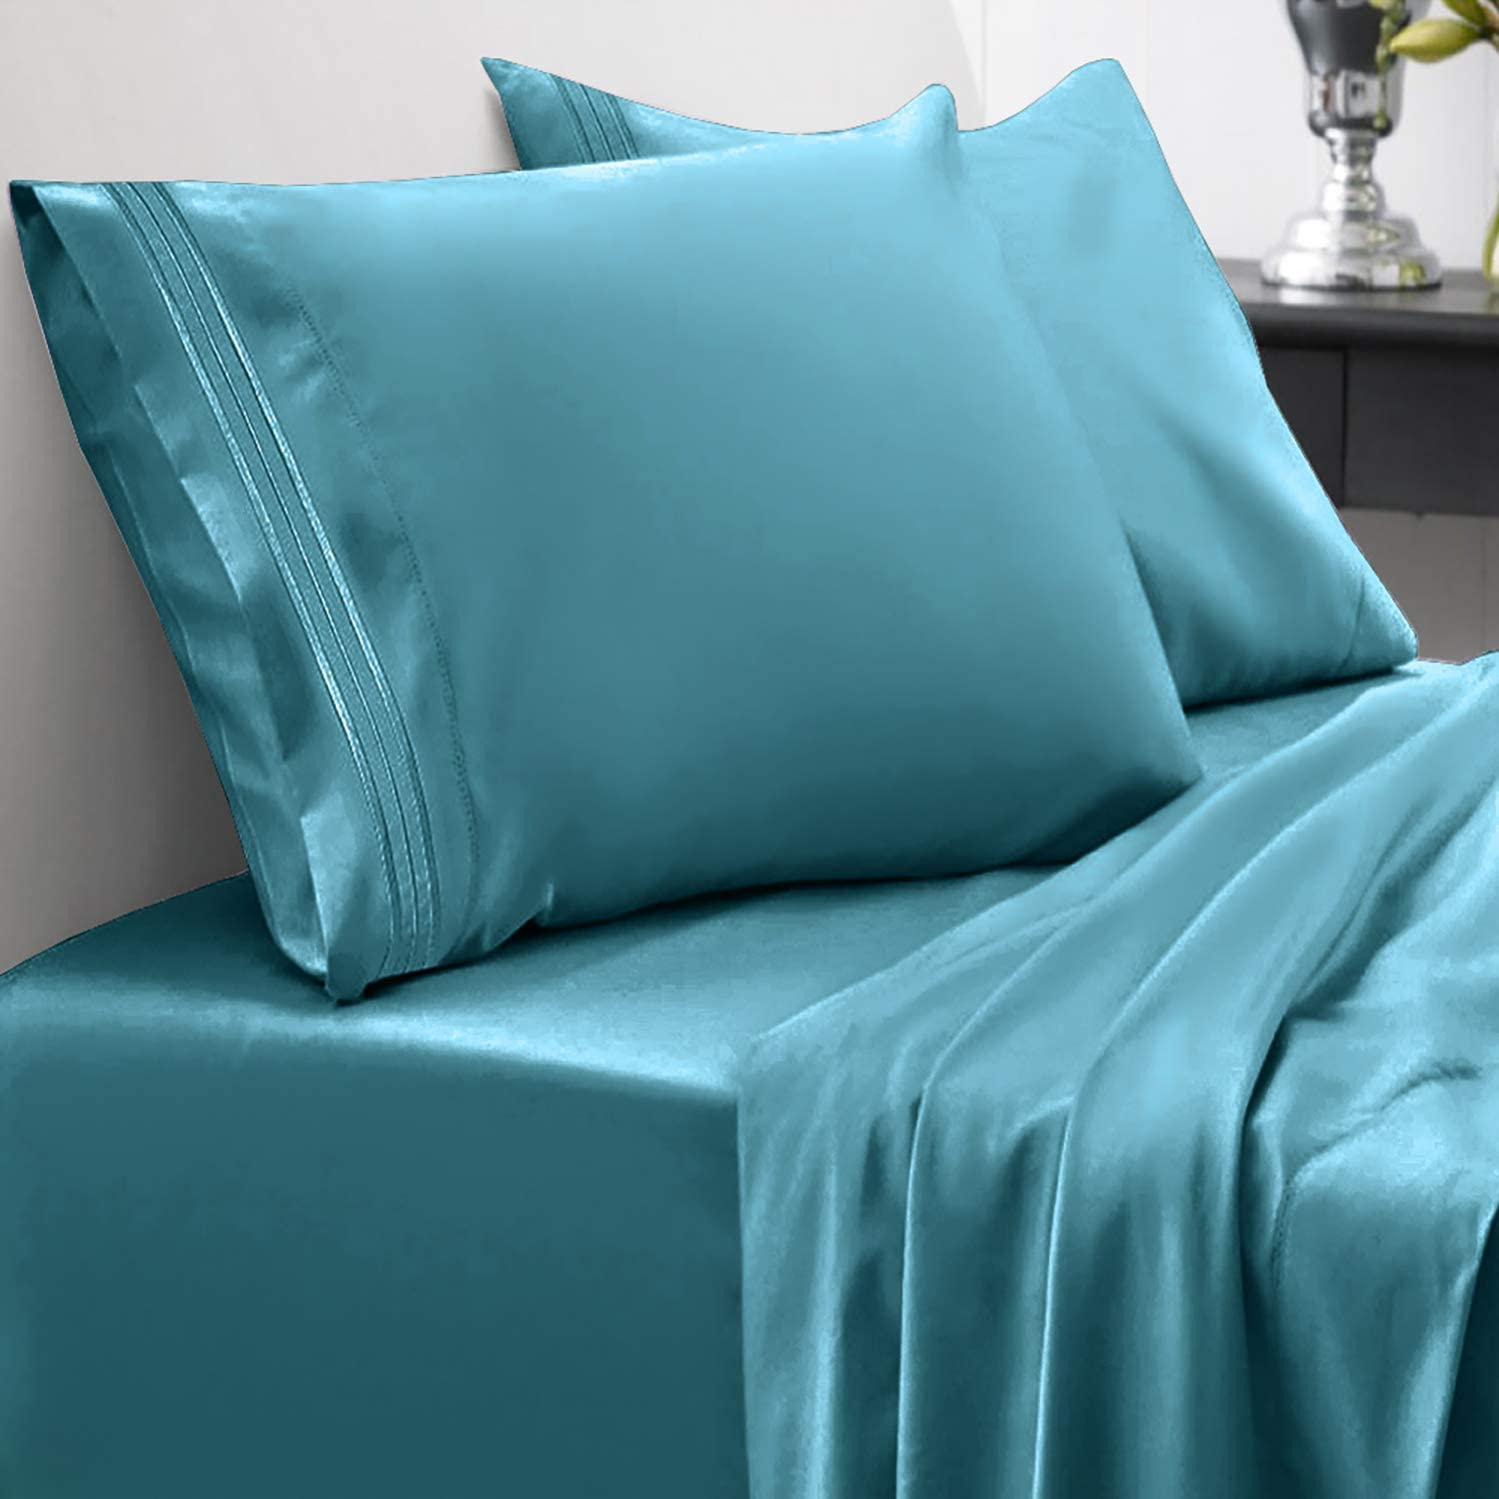 Sweet Home Collection 1800 Thread Count Bed Set Egyptian Quality Brushed Microfiber 4 Piece Deep Pocket Sheets, King, Teal